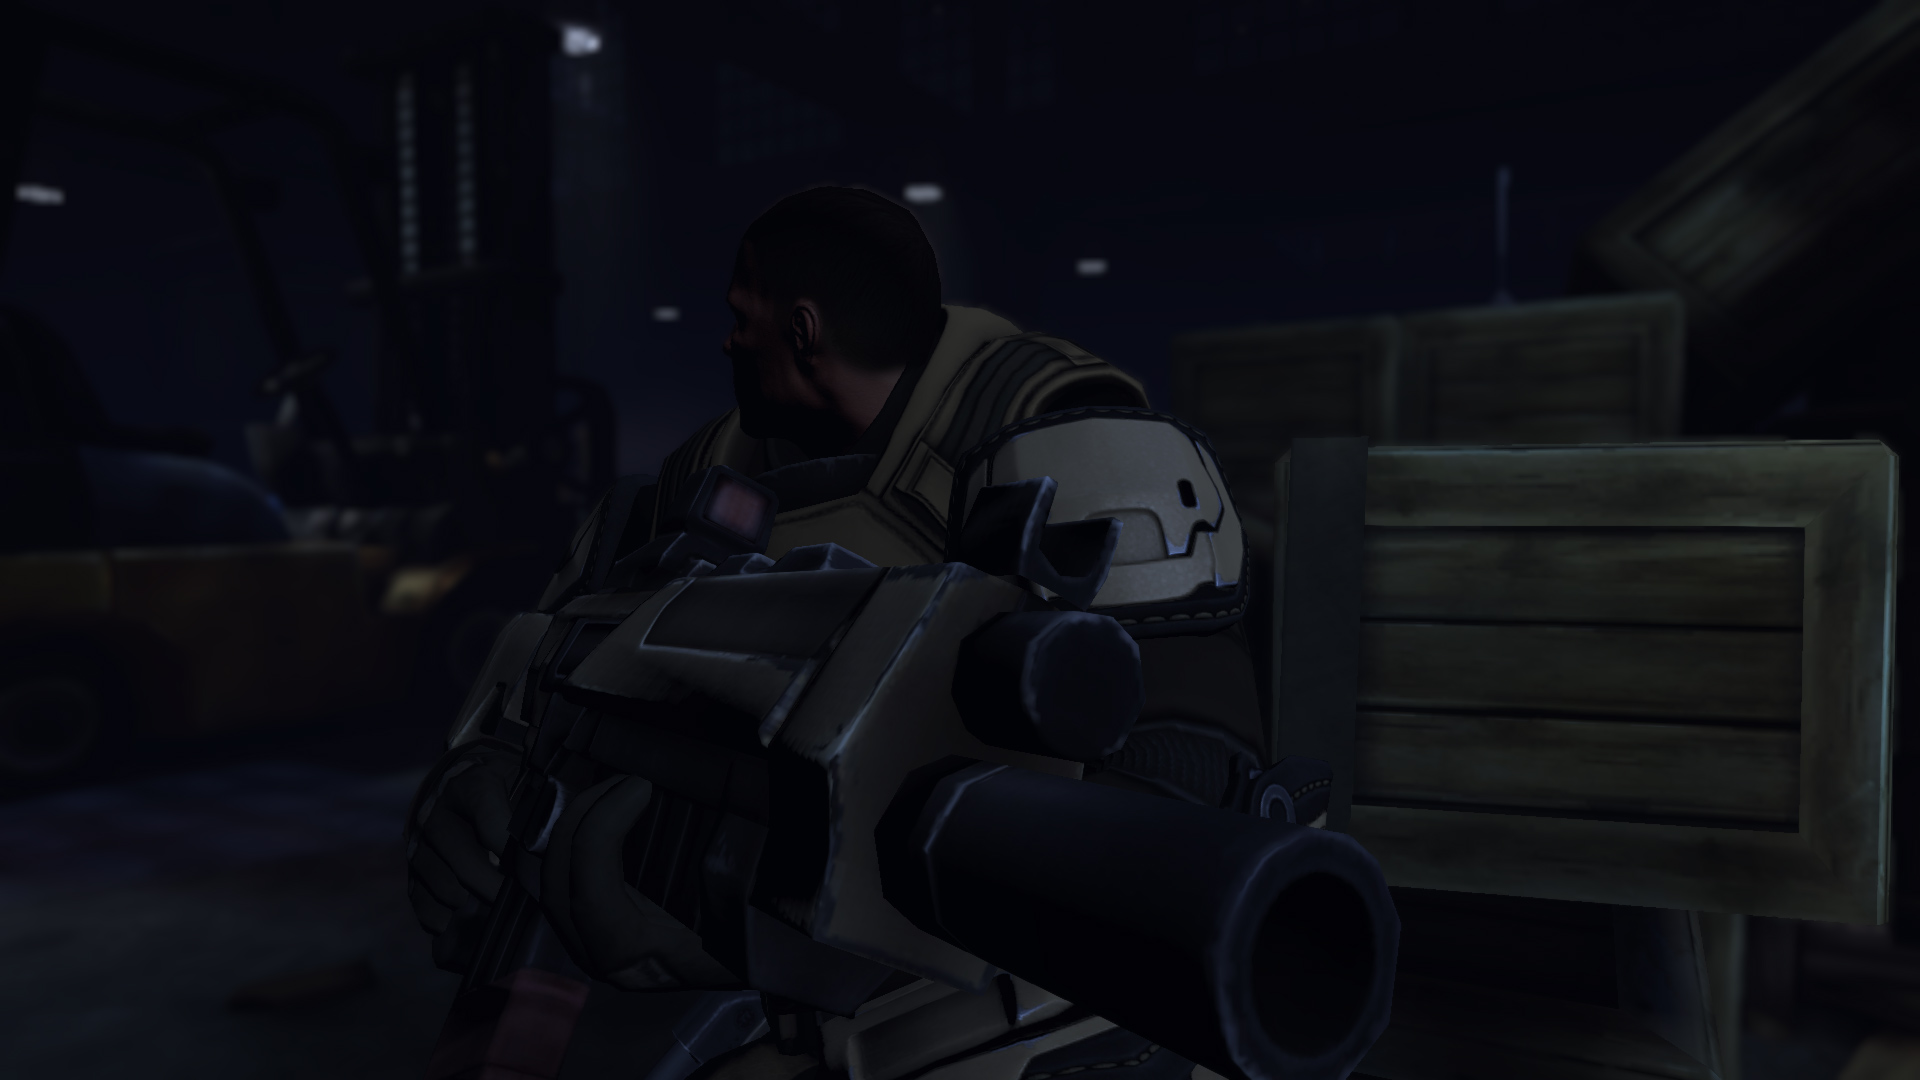 XCOM soldier makes sure his buddies are behind him.